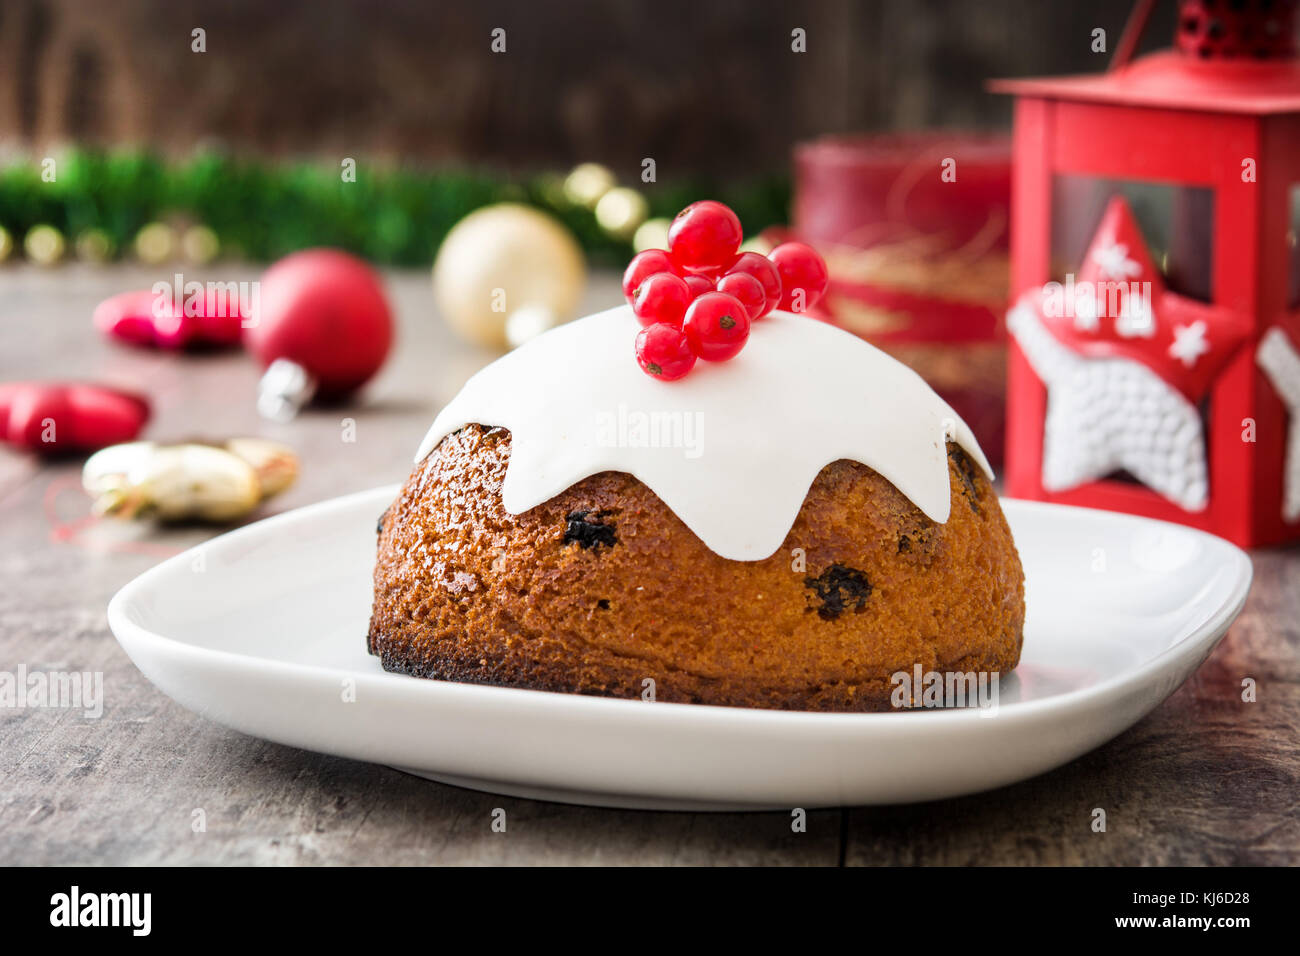 Christmas pudding on wooden table - Stock Image